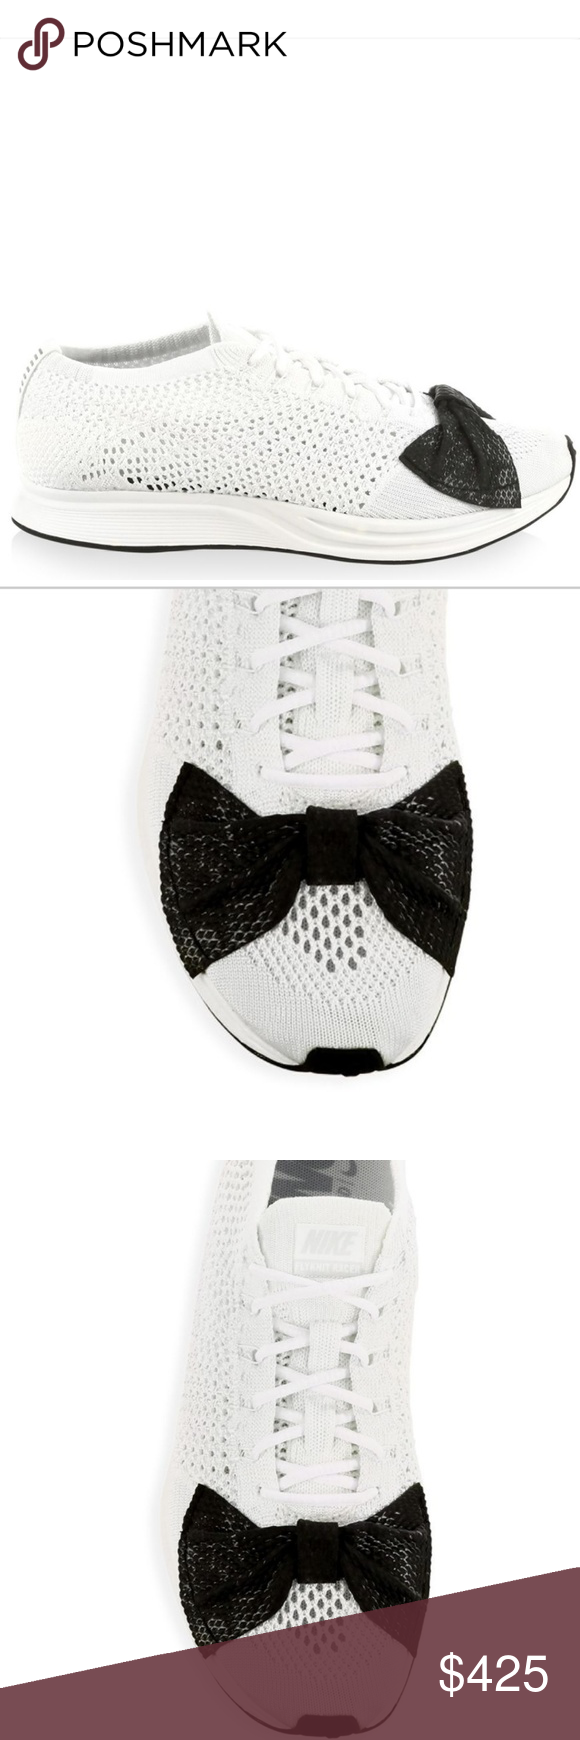 b8452a5154c Nike x Comme des Garcons Bow tie Sneakers sz. 9 Nike Collab. W  Comme des  Garcons Flyknit racer sneaker (mesh knit upper round toe rubber sole) Size  9 white ...